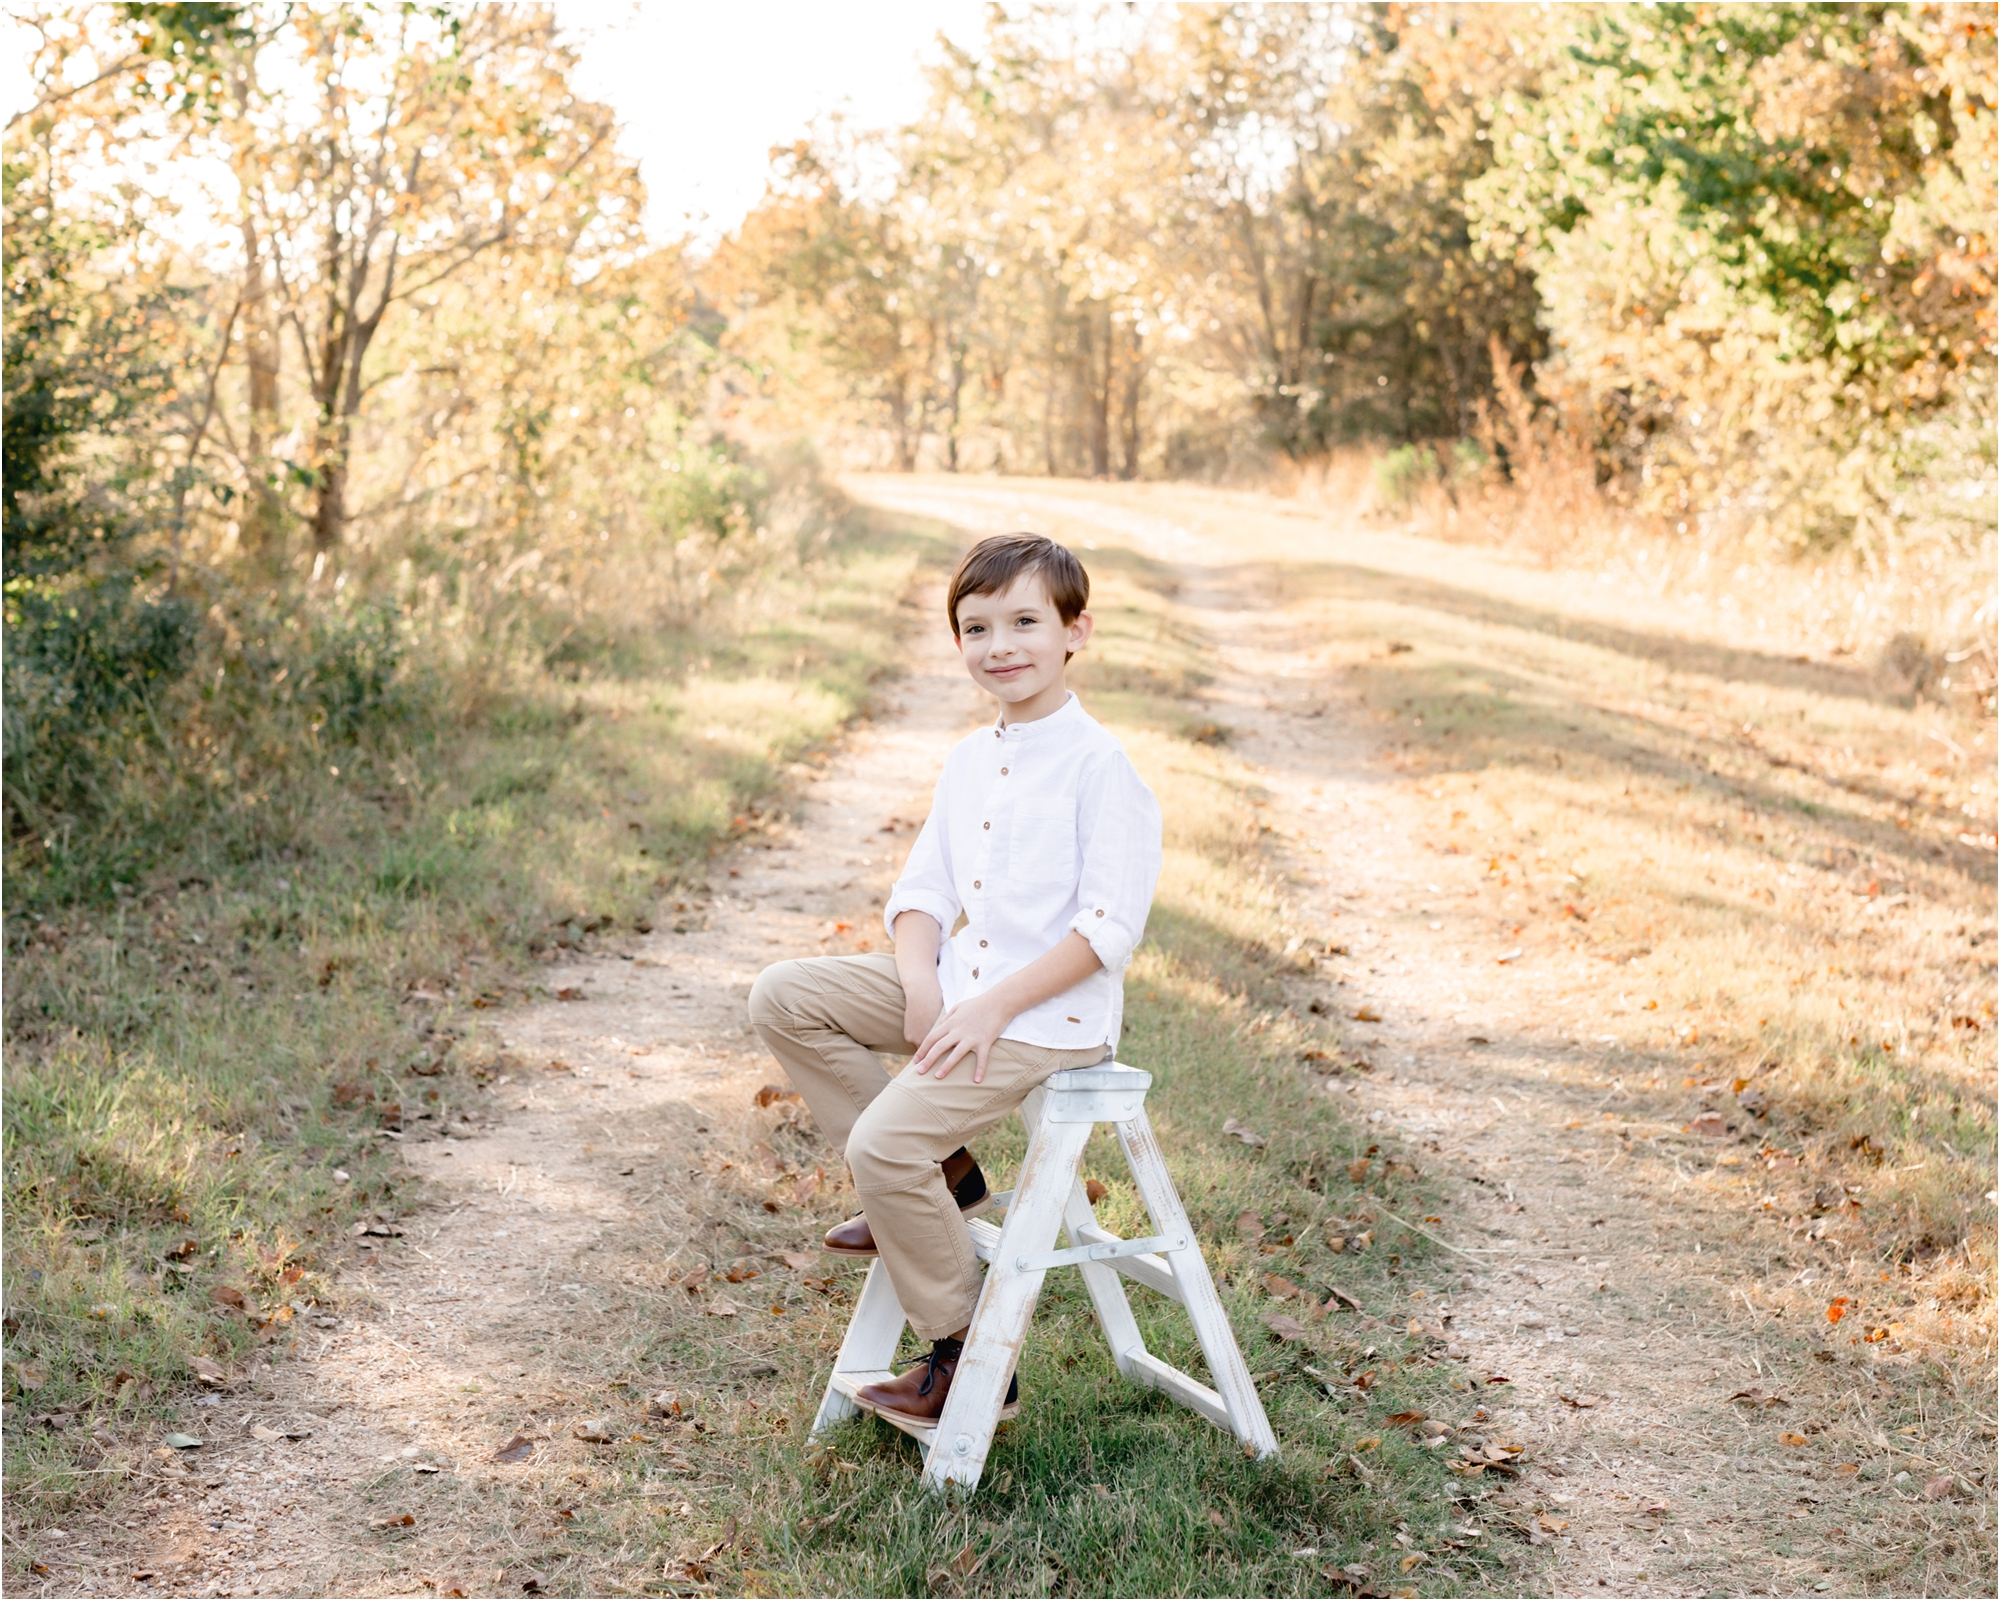 Boy posing on ladder during sunset park family session in Katy, TX. Photo by Lifetime of Clicks Photography.